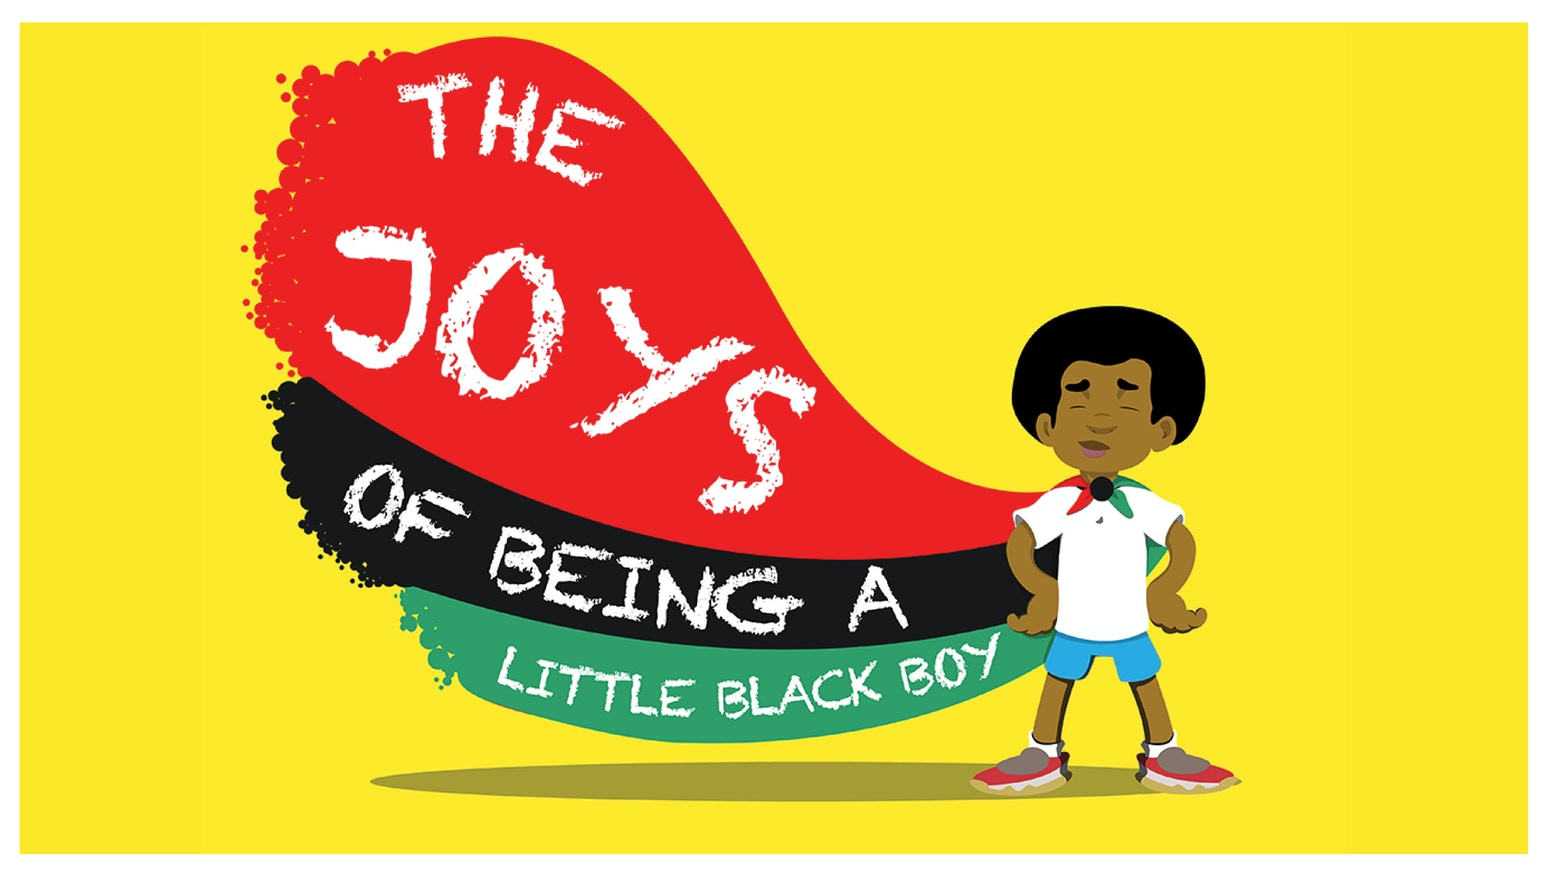 The Joys of Being a Little Black Boy is a children's book that vividly illustrates the joy possessed by little black boys.